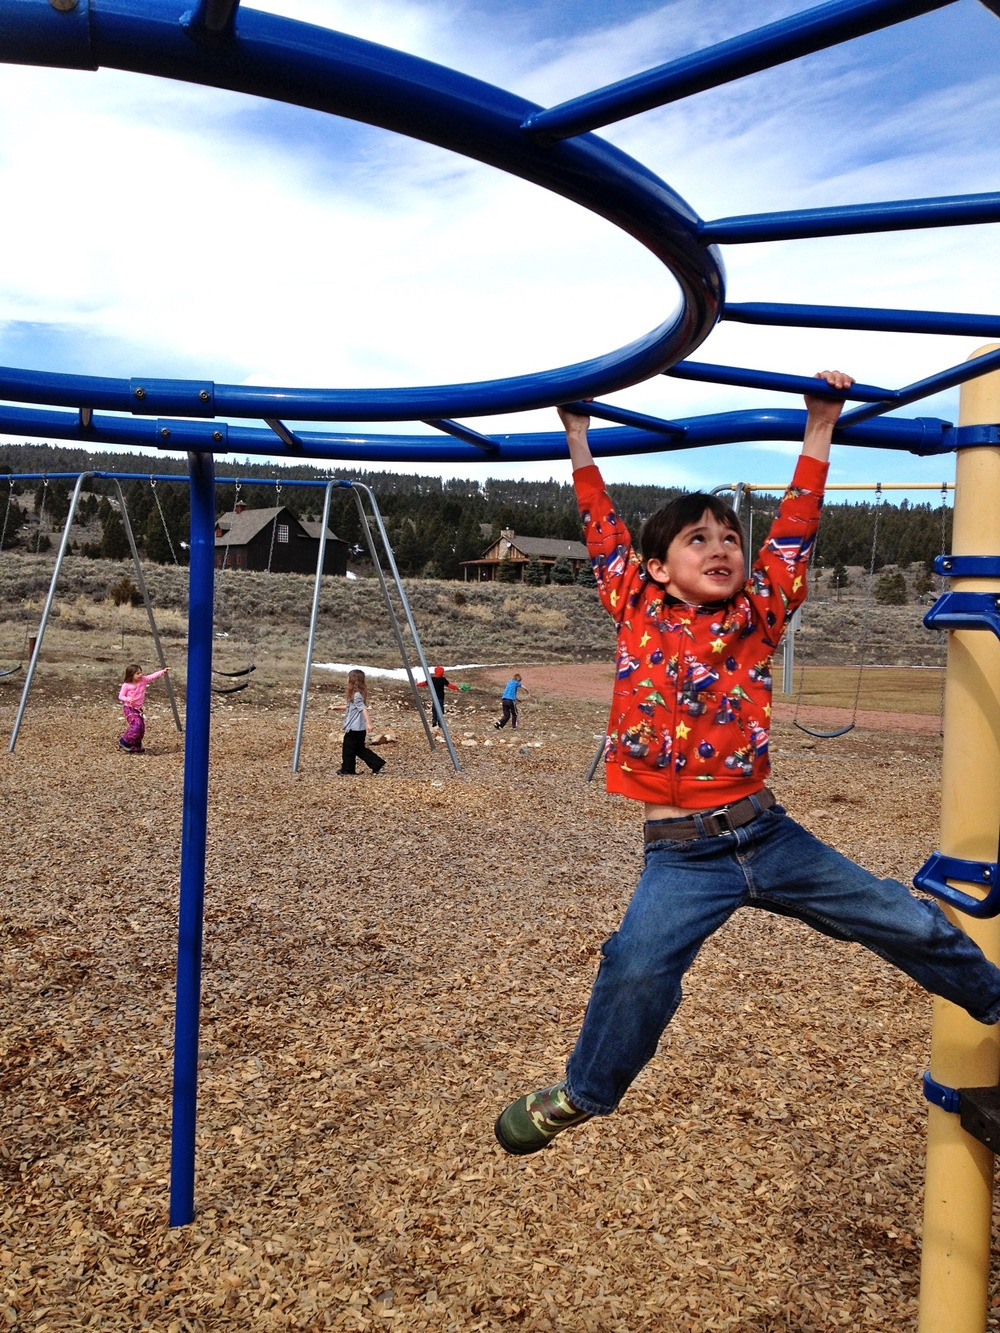 Monkeying around at Ophir School. Big Sky, Montana. (Photo by Emily Stifler Wolfe)